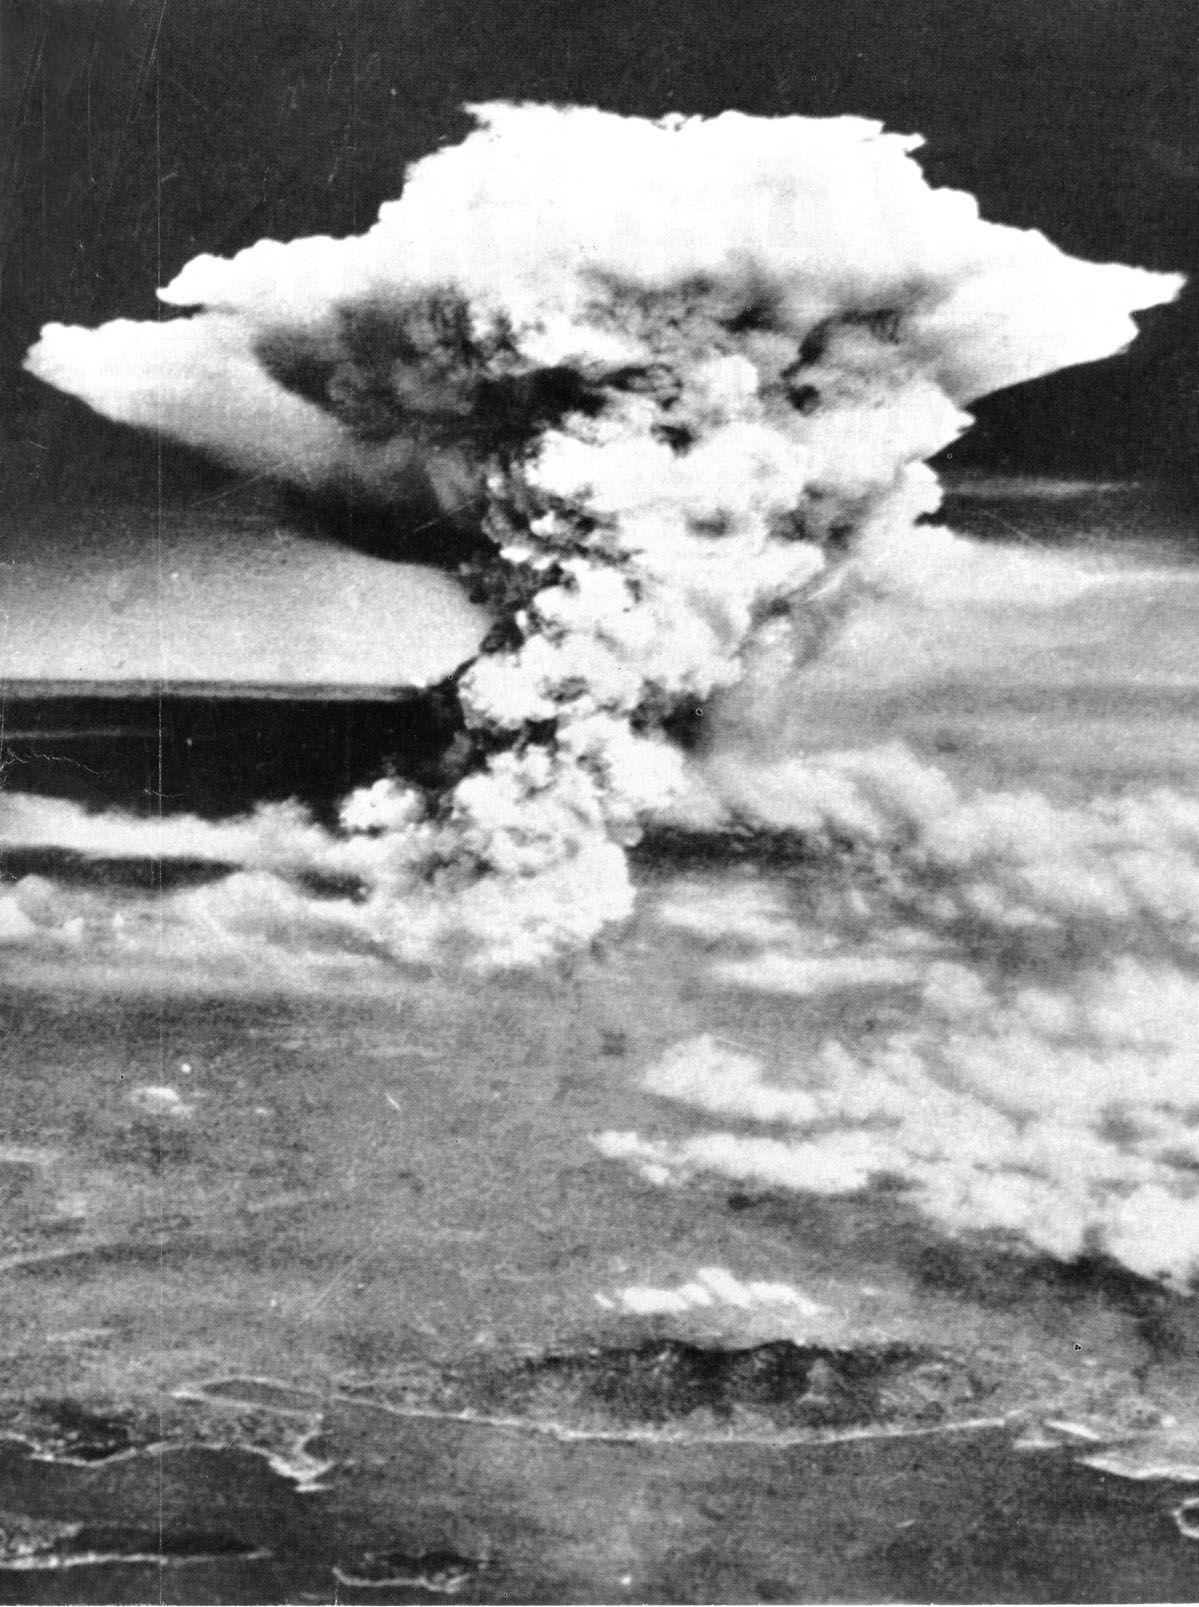 Bombing of Hiroshima: On August 6, 1945 the US Military released a ...